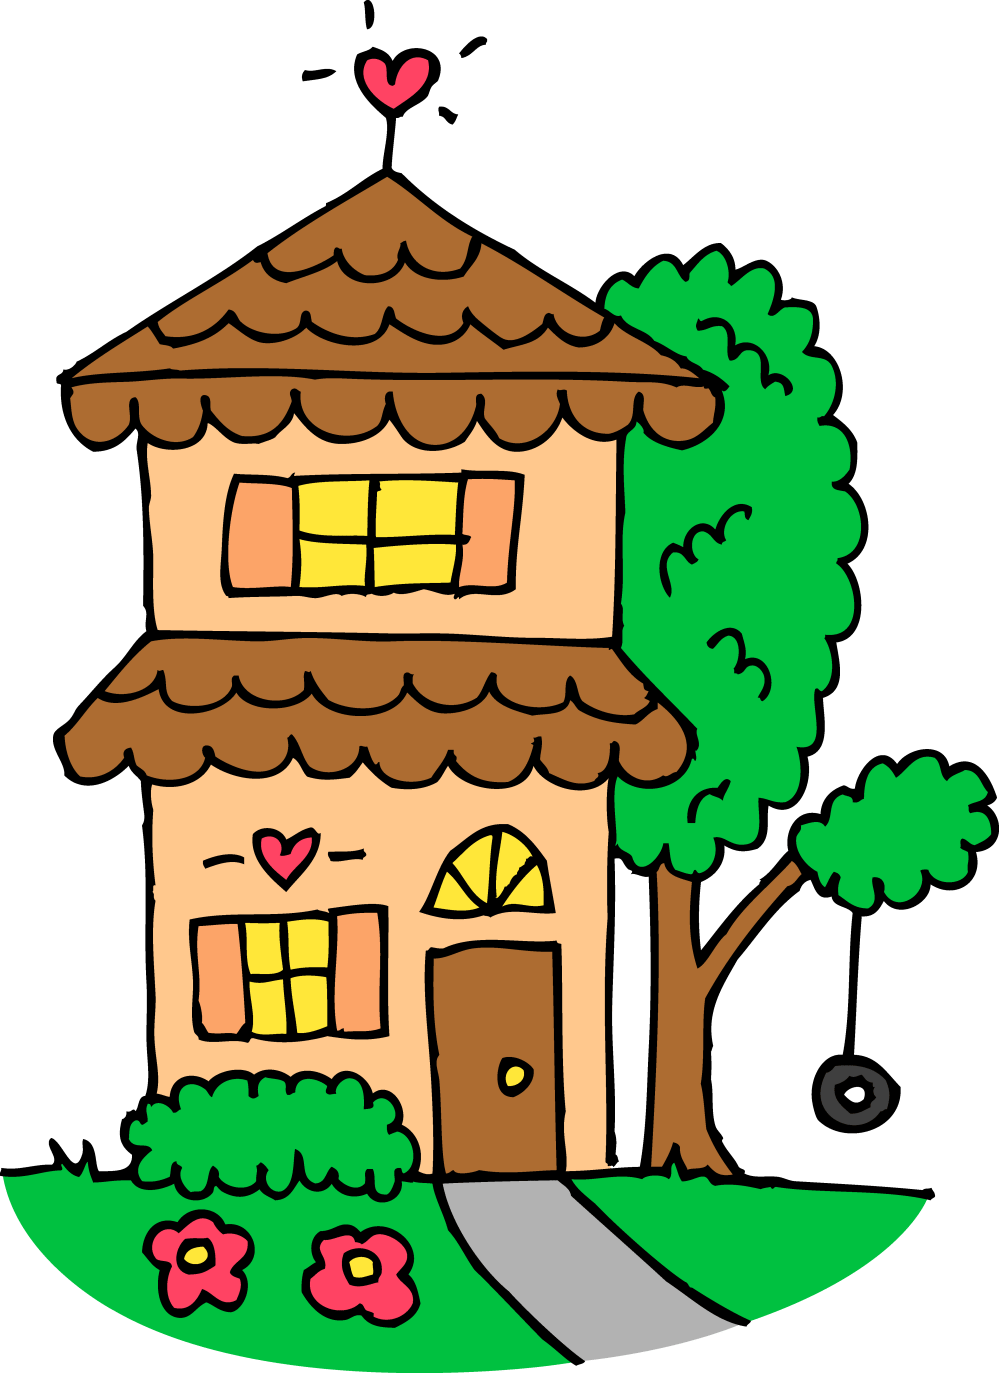 medium resolution of 4844x6656 house for sale clip art free clipart images 2 clipartix 4